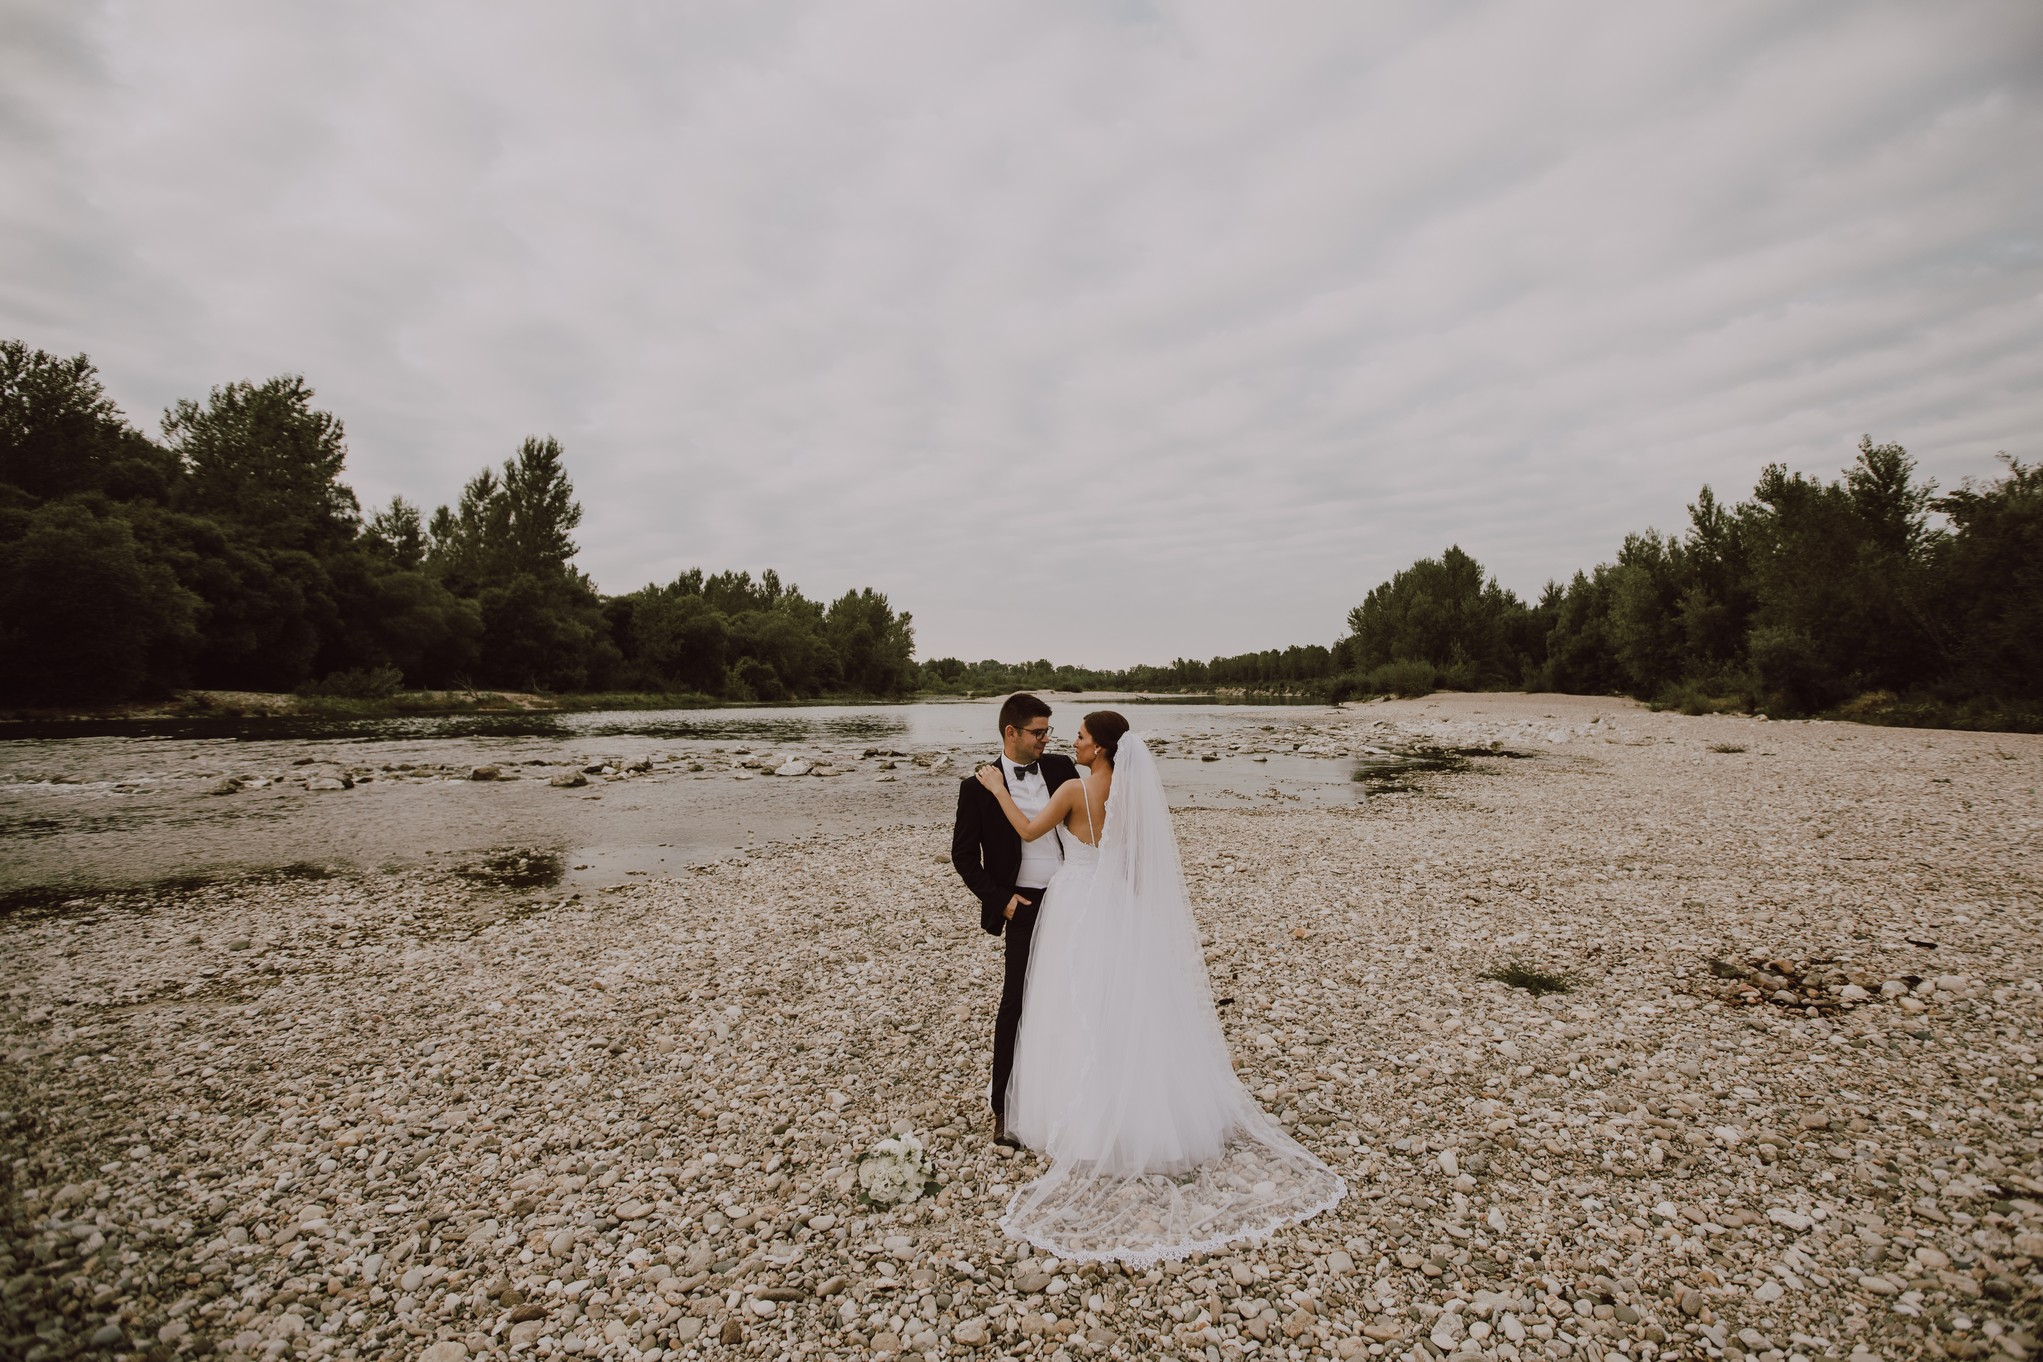 The couple stands on the riverbank and look at each other in love